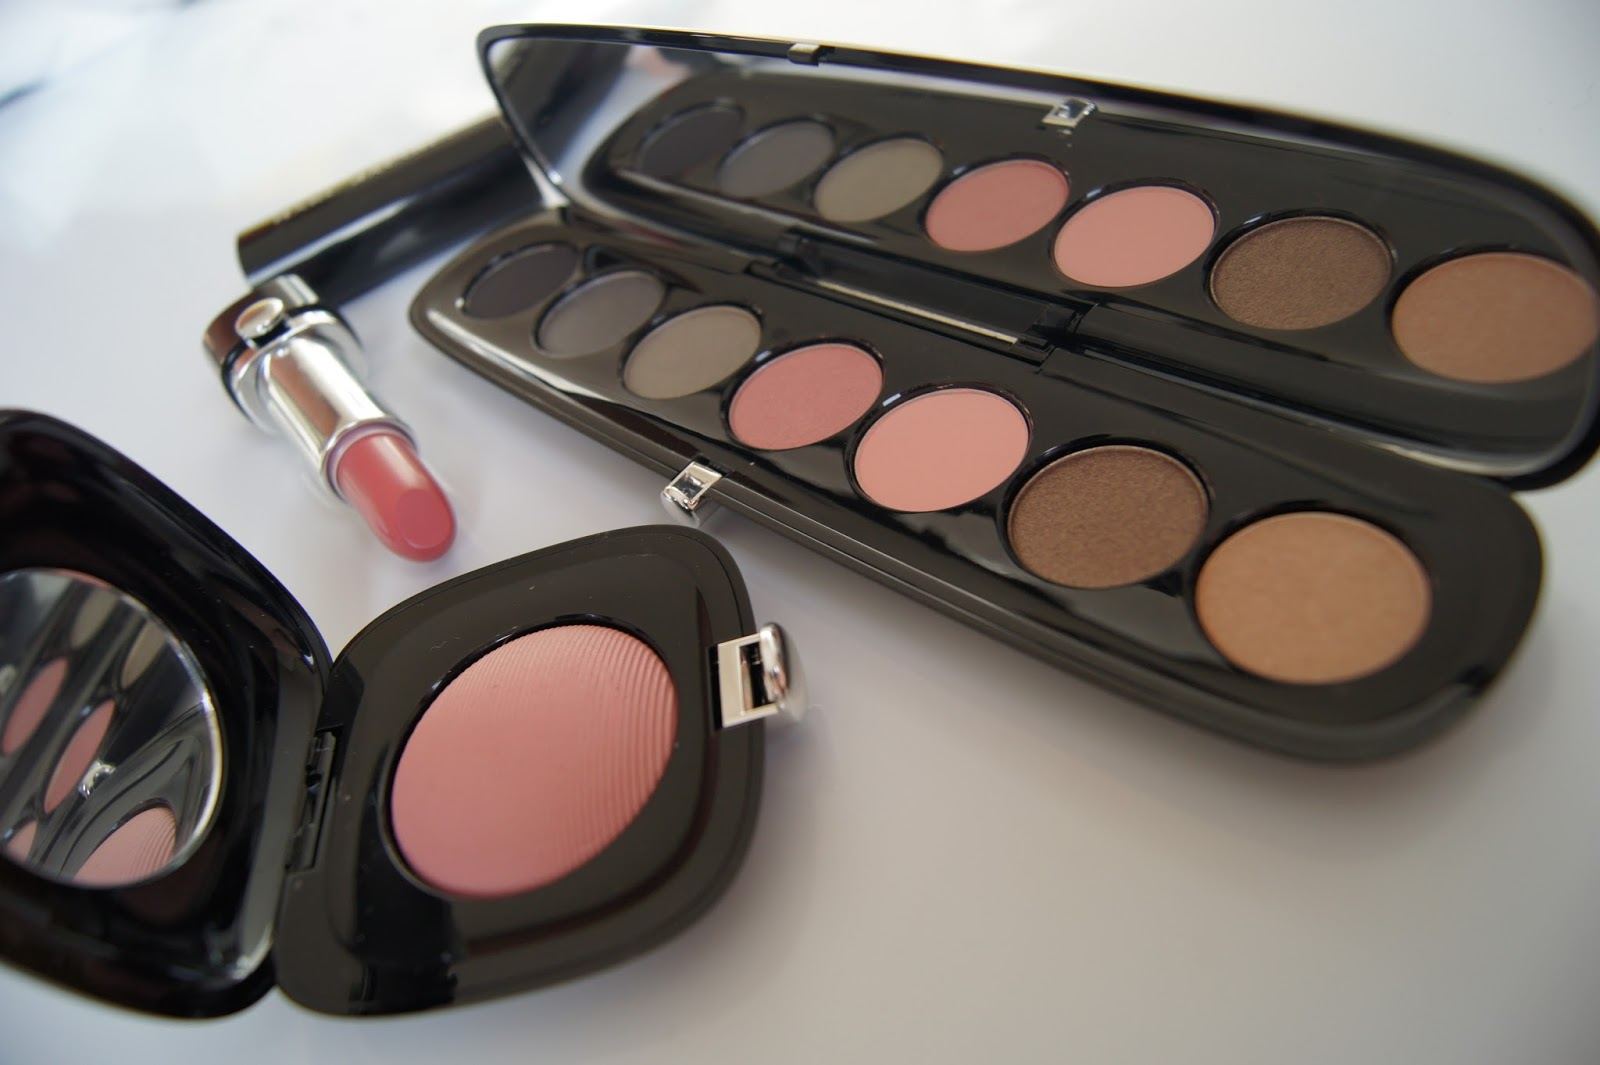 Marc Jacobs Beauty: Eye Con No 7 in The Enigma review